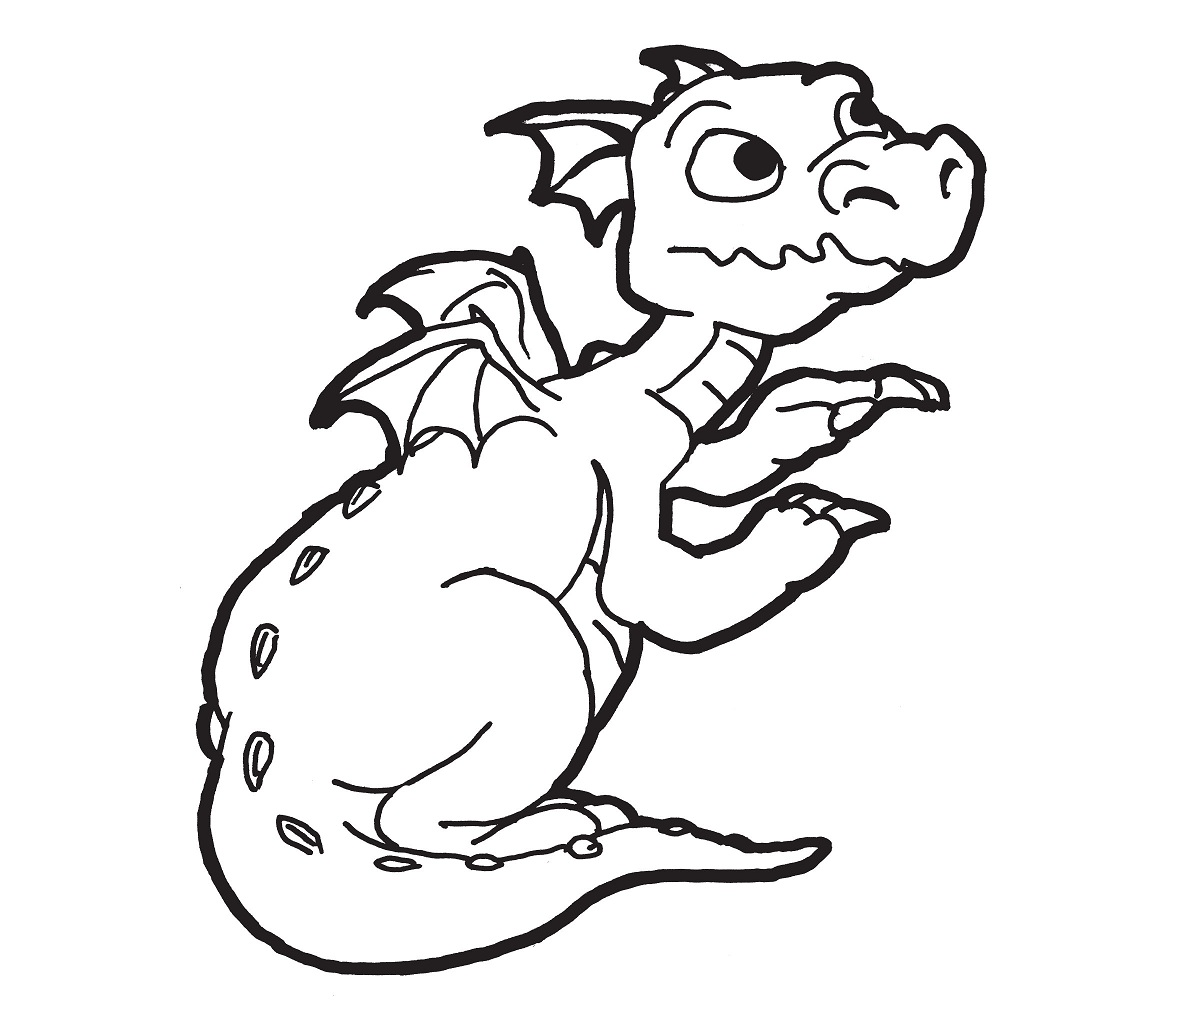 Dragon Coloring Pages Easy | Activity Shelter